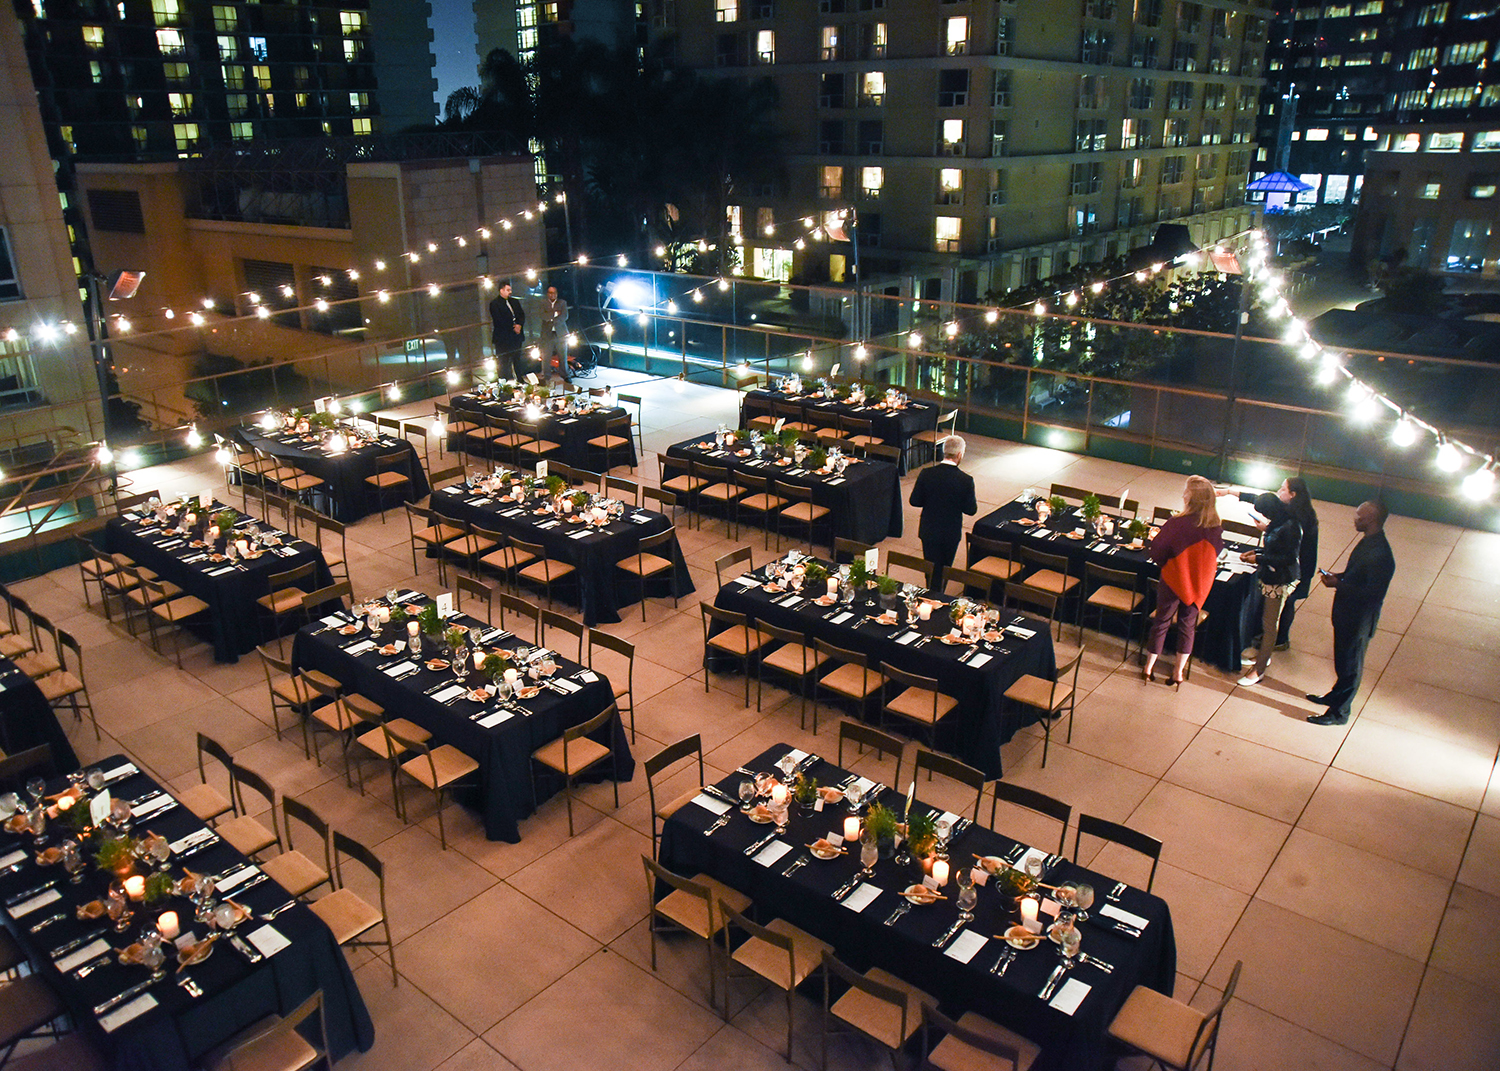 Roof Terrace, photo by Owen Kolasinski/BFAnyc.com